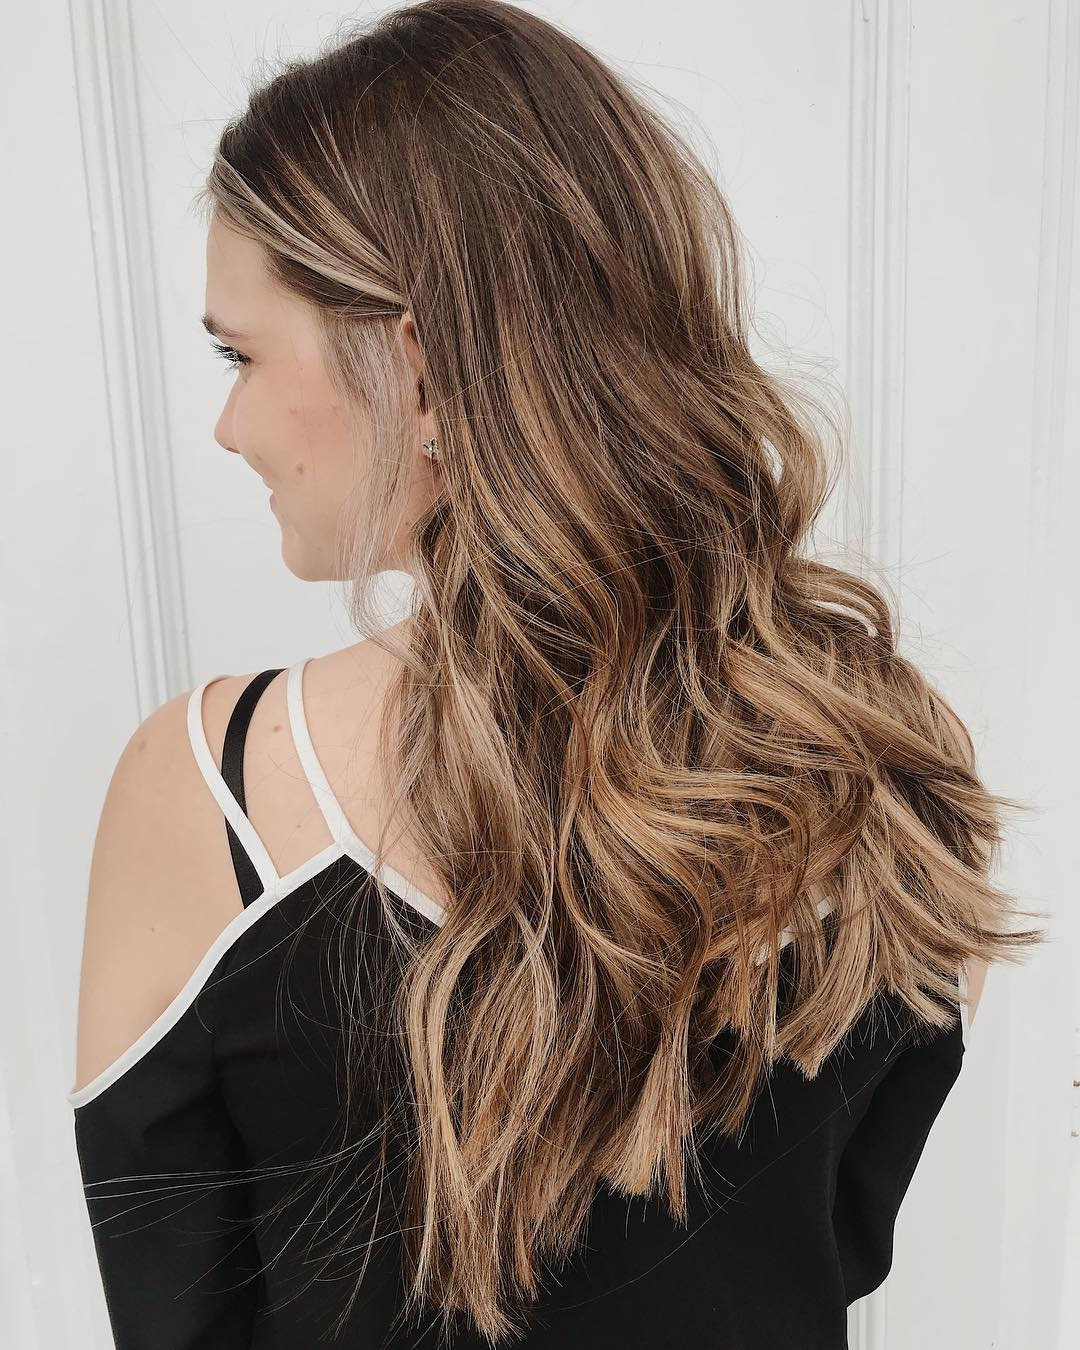 Hair We Love October 22nd - 28th 2018